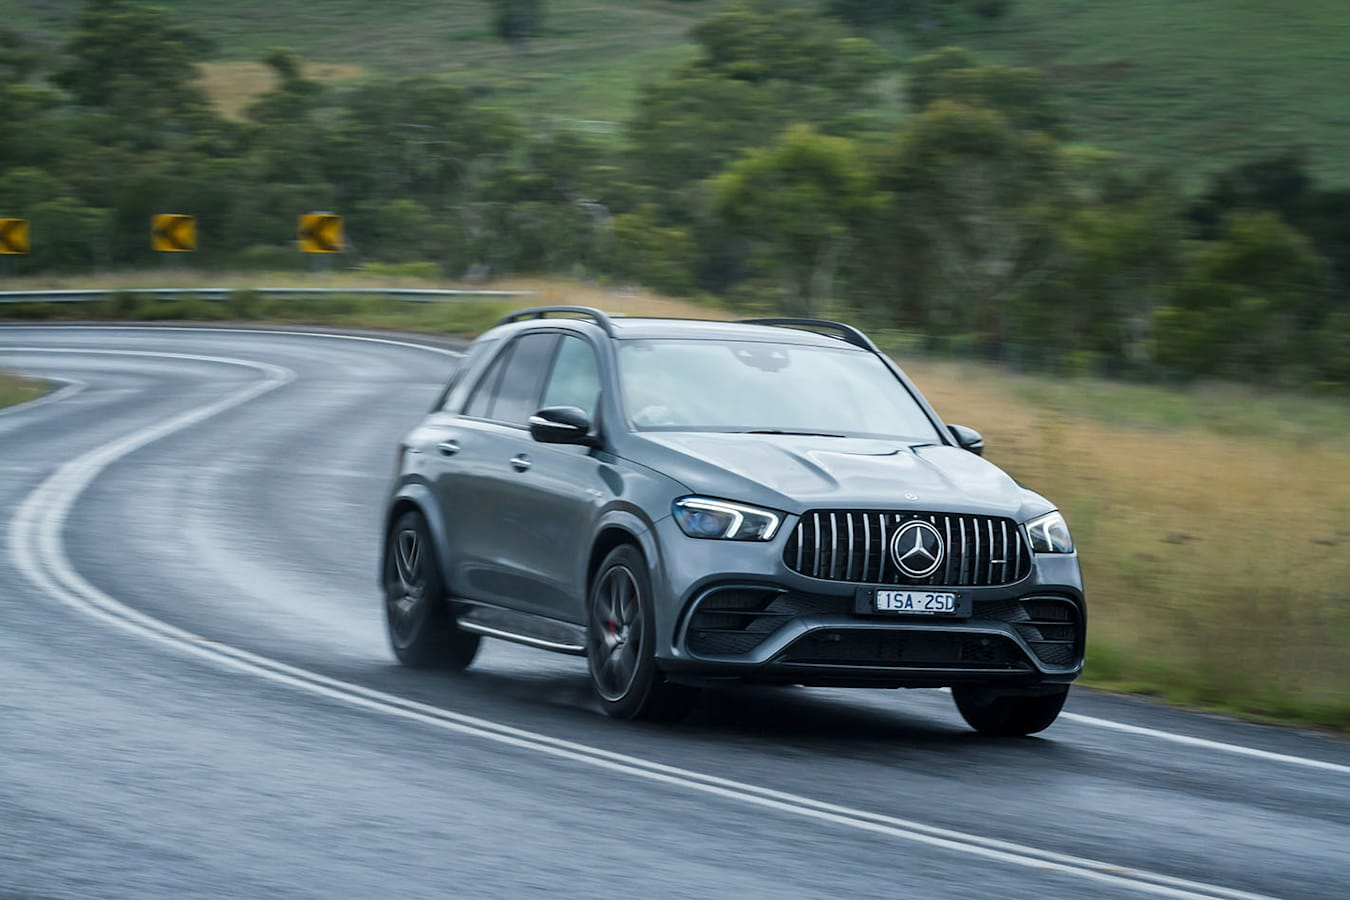 2021 Mercedes-AMG GLE 63 S review